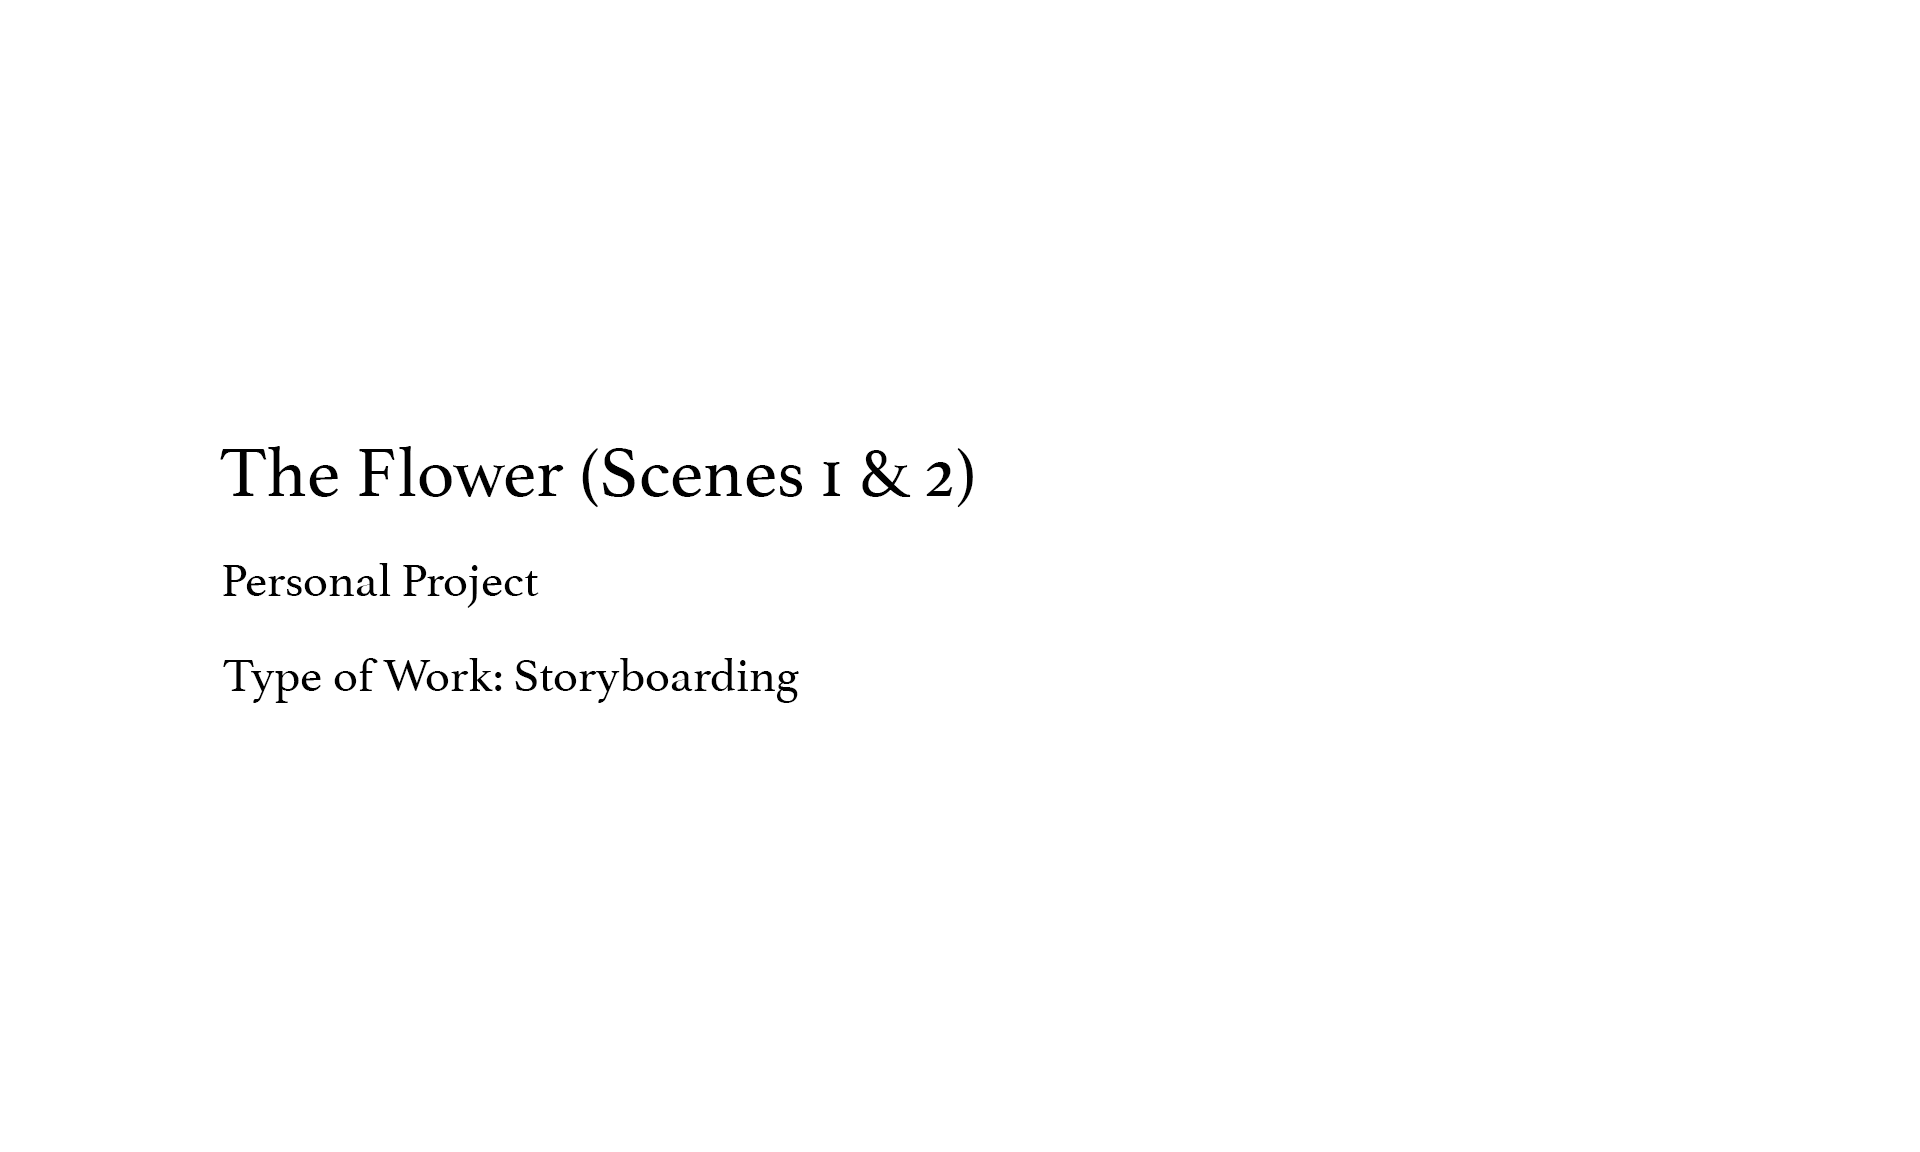 The Flower_TitleCard.png